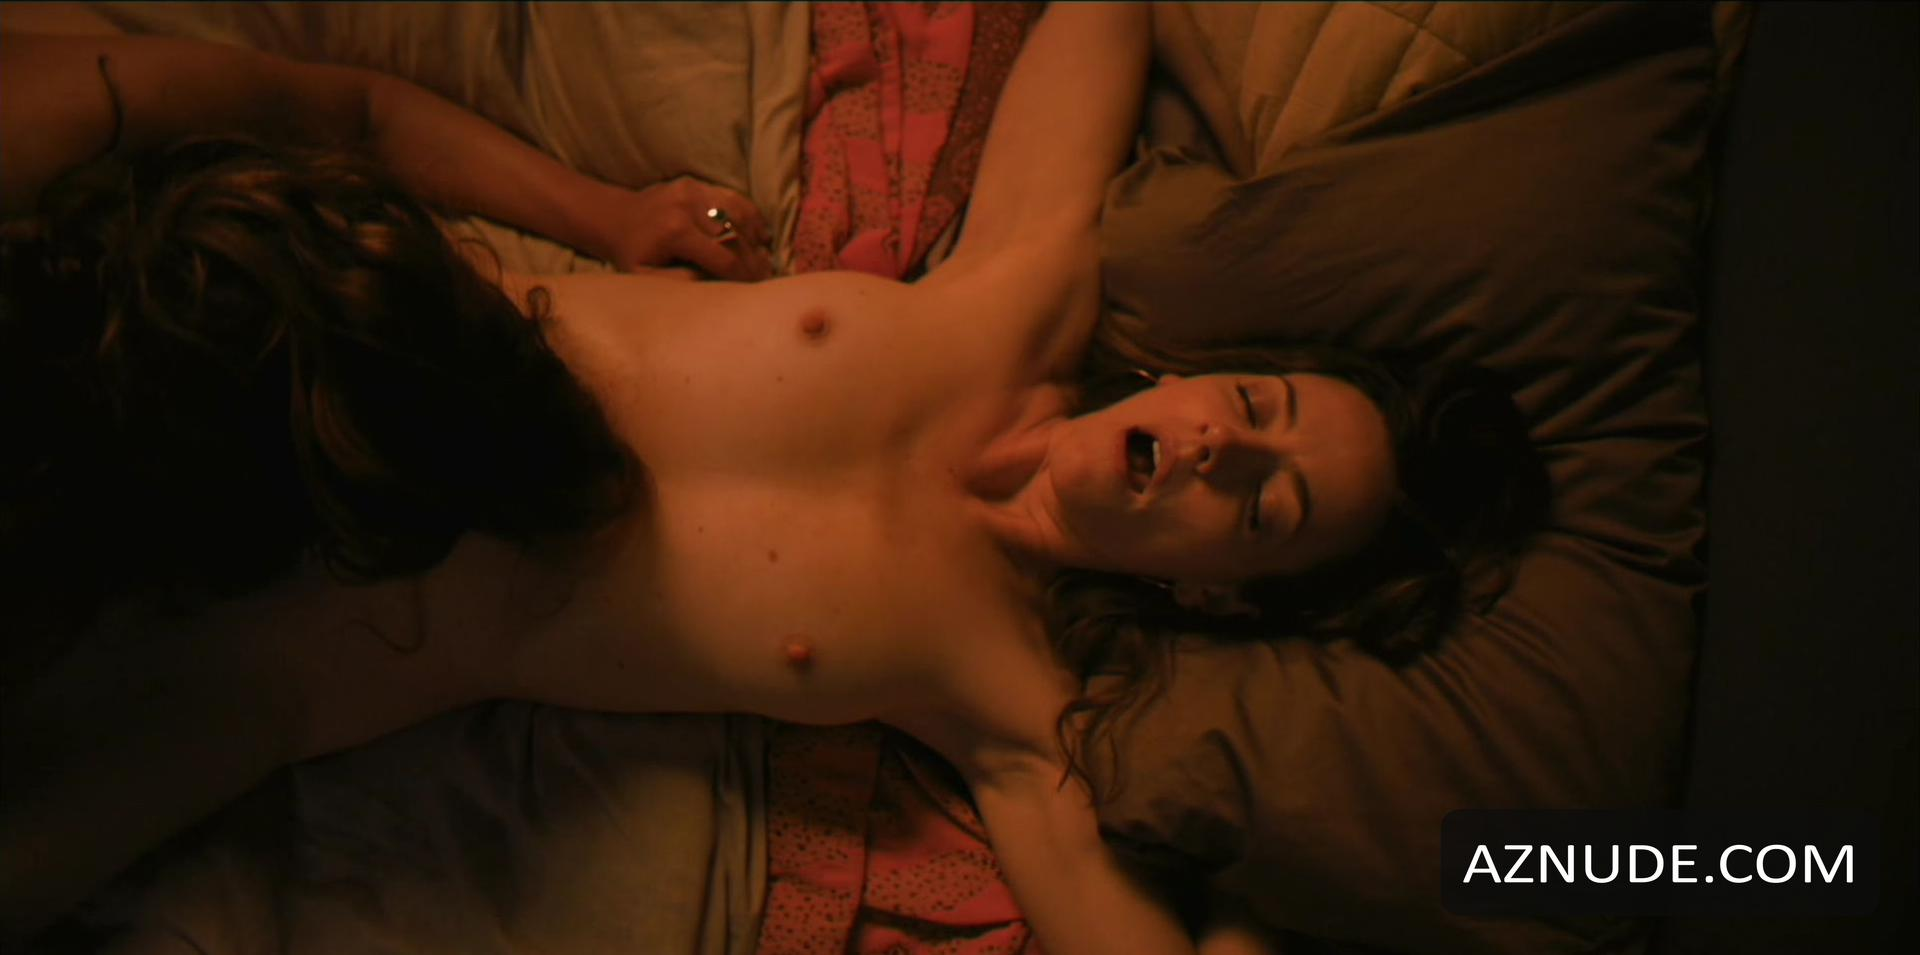 The real l word sex scene